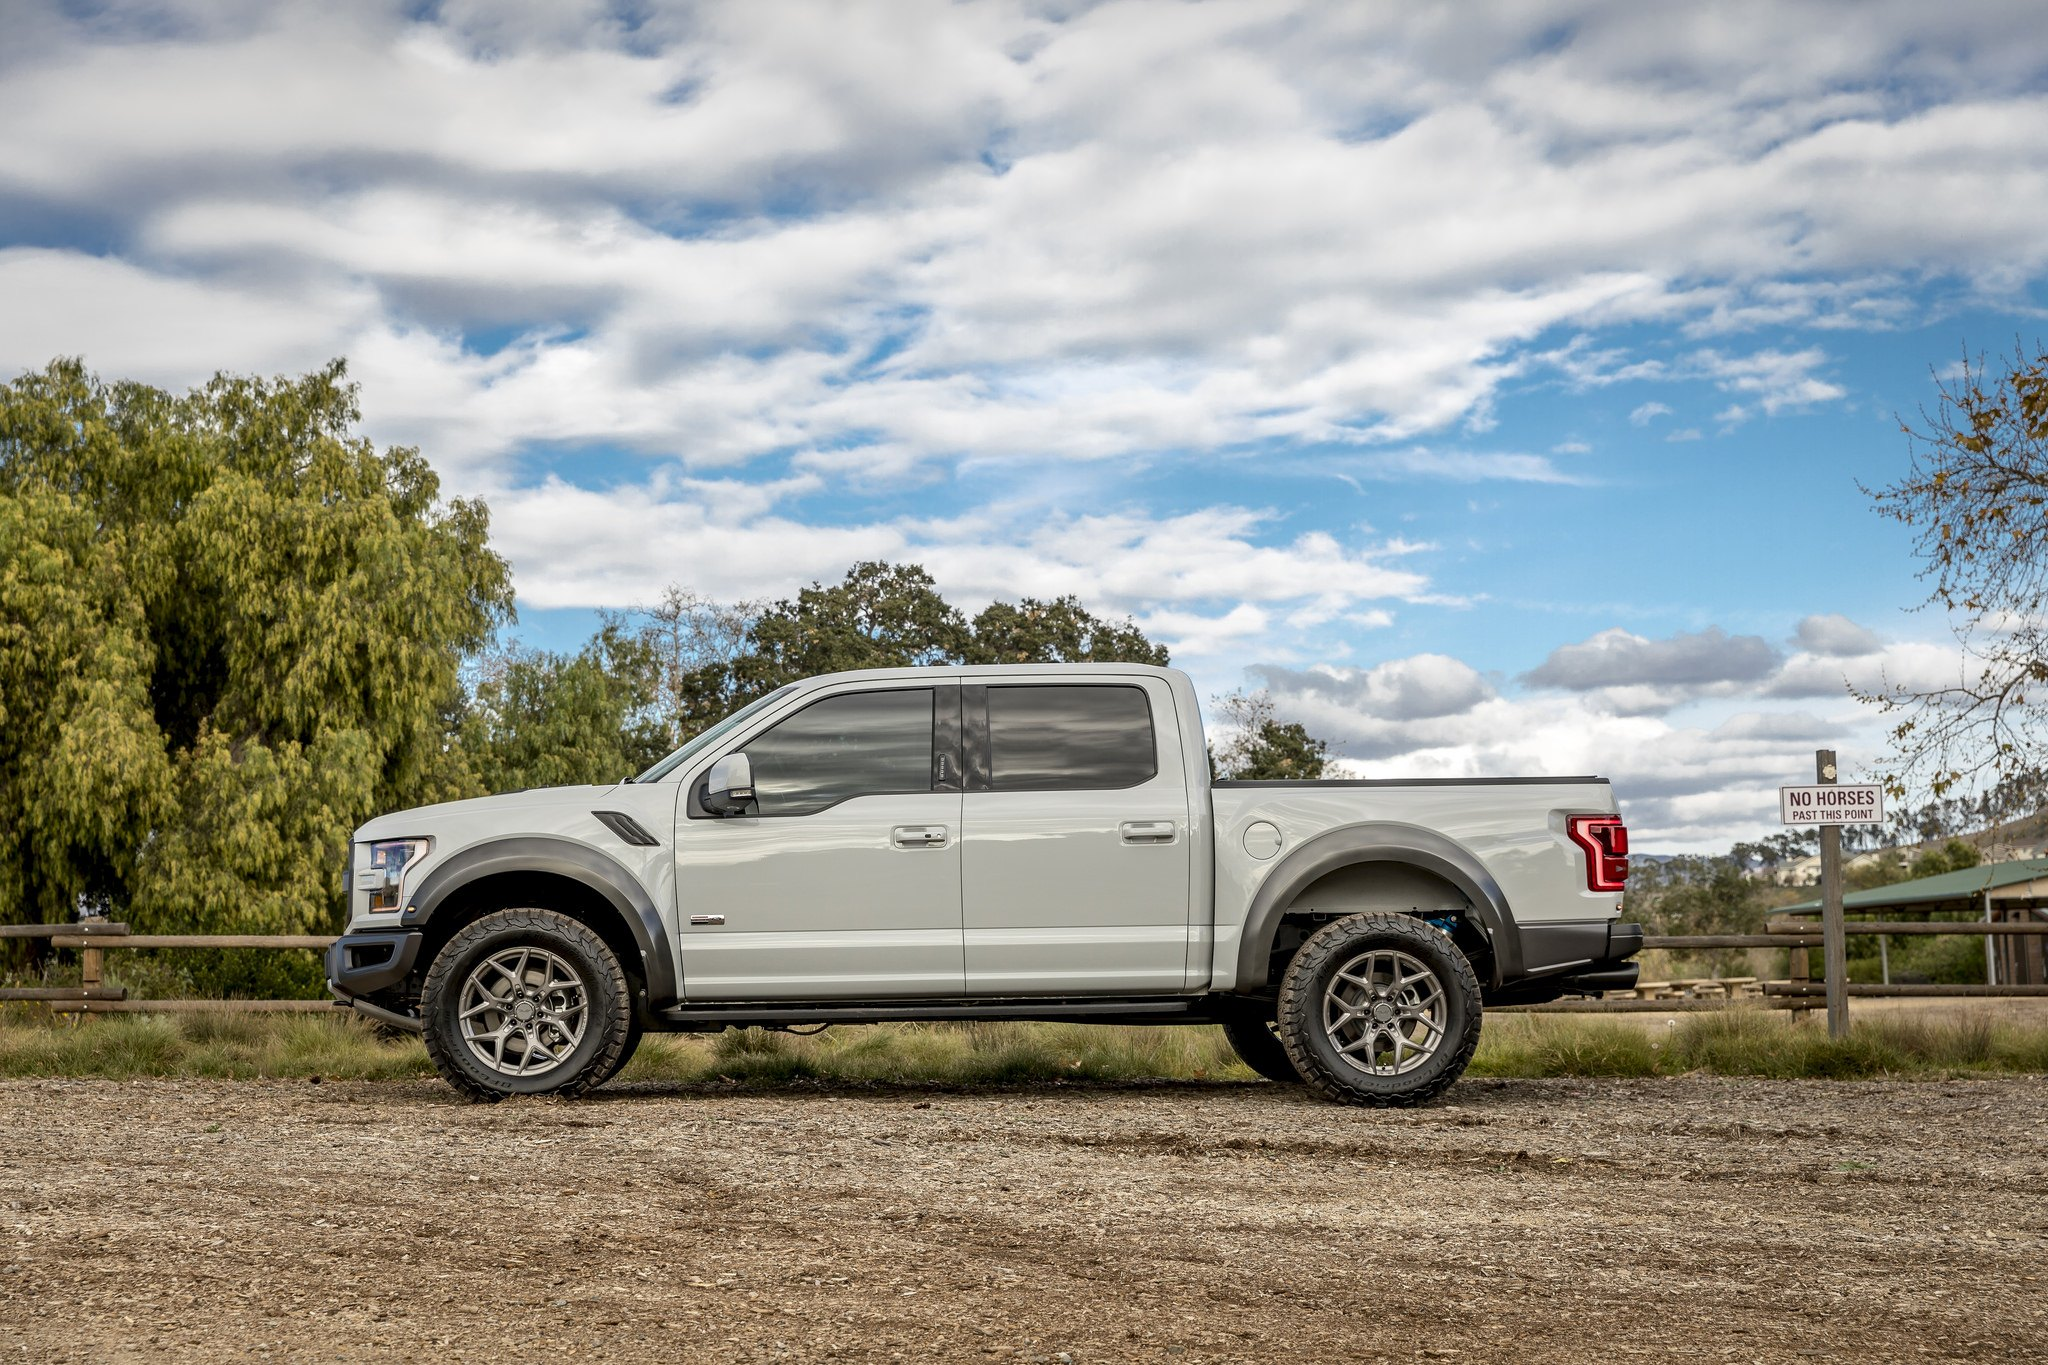 Gray Lifted Ford F-150 with Custom Running Boards - Photo by Vorsteiner